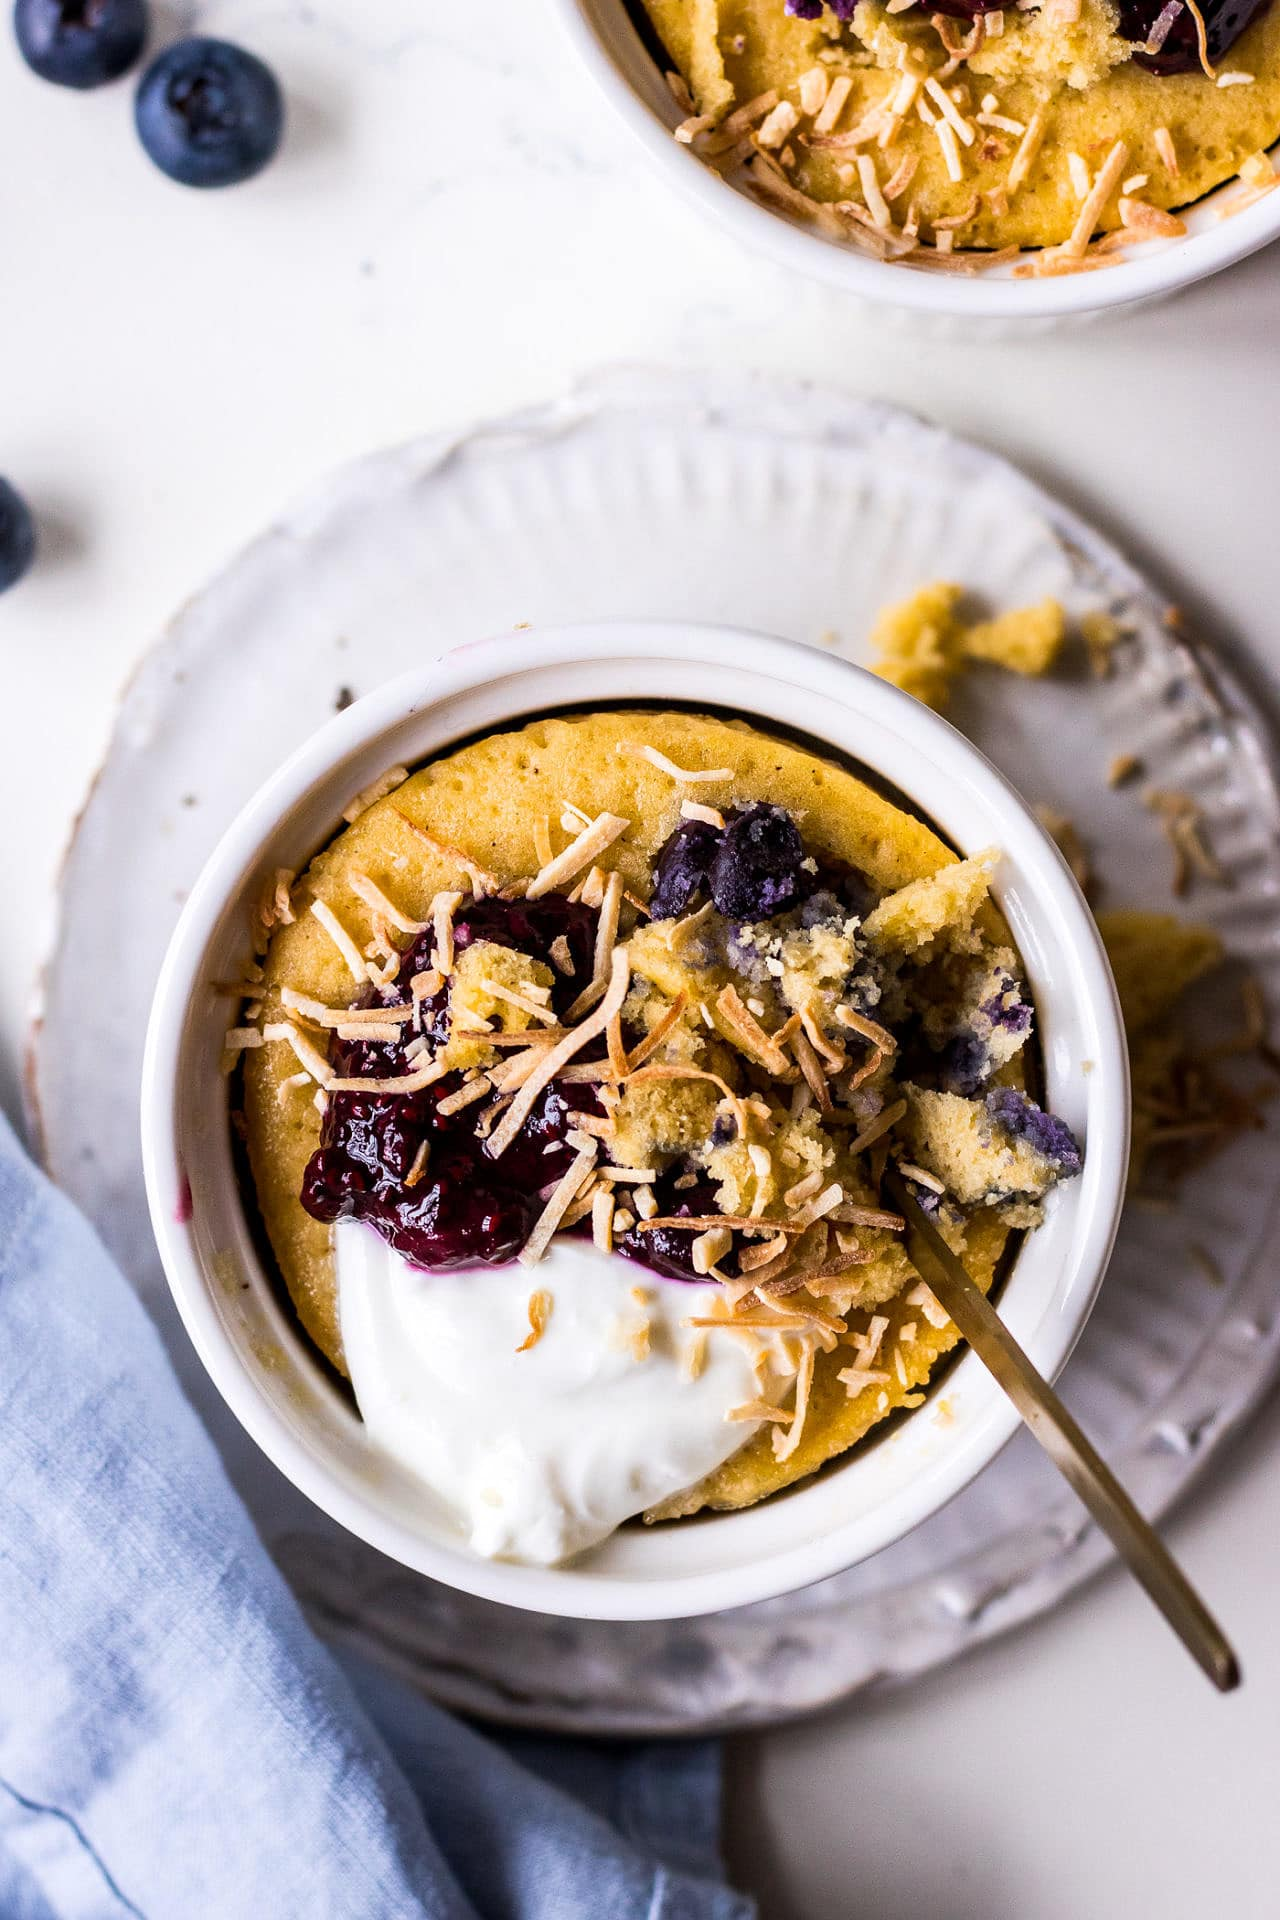 Top down view of a vanilla mug cake in white ramekin topped with blueberries, yoghurt and shredded coconut with a blue napkin and gold teaspoon